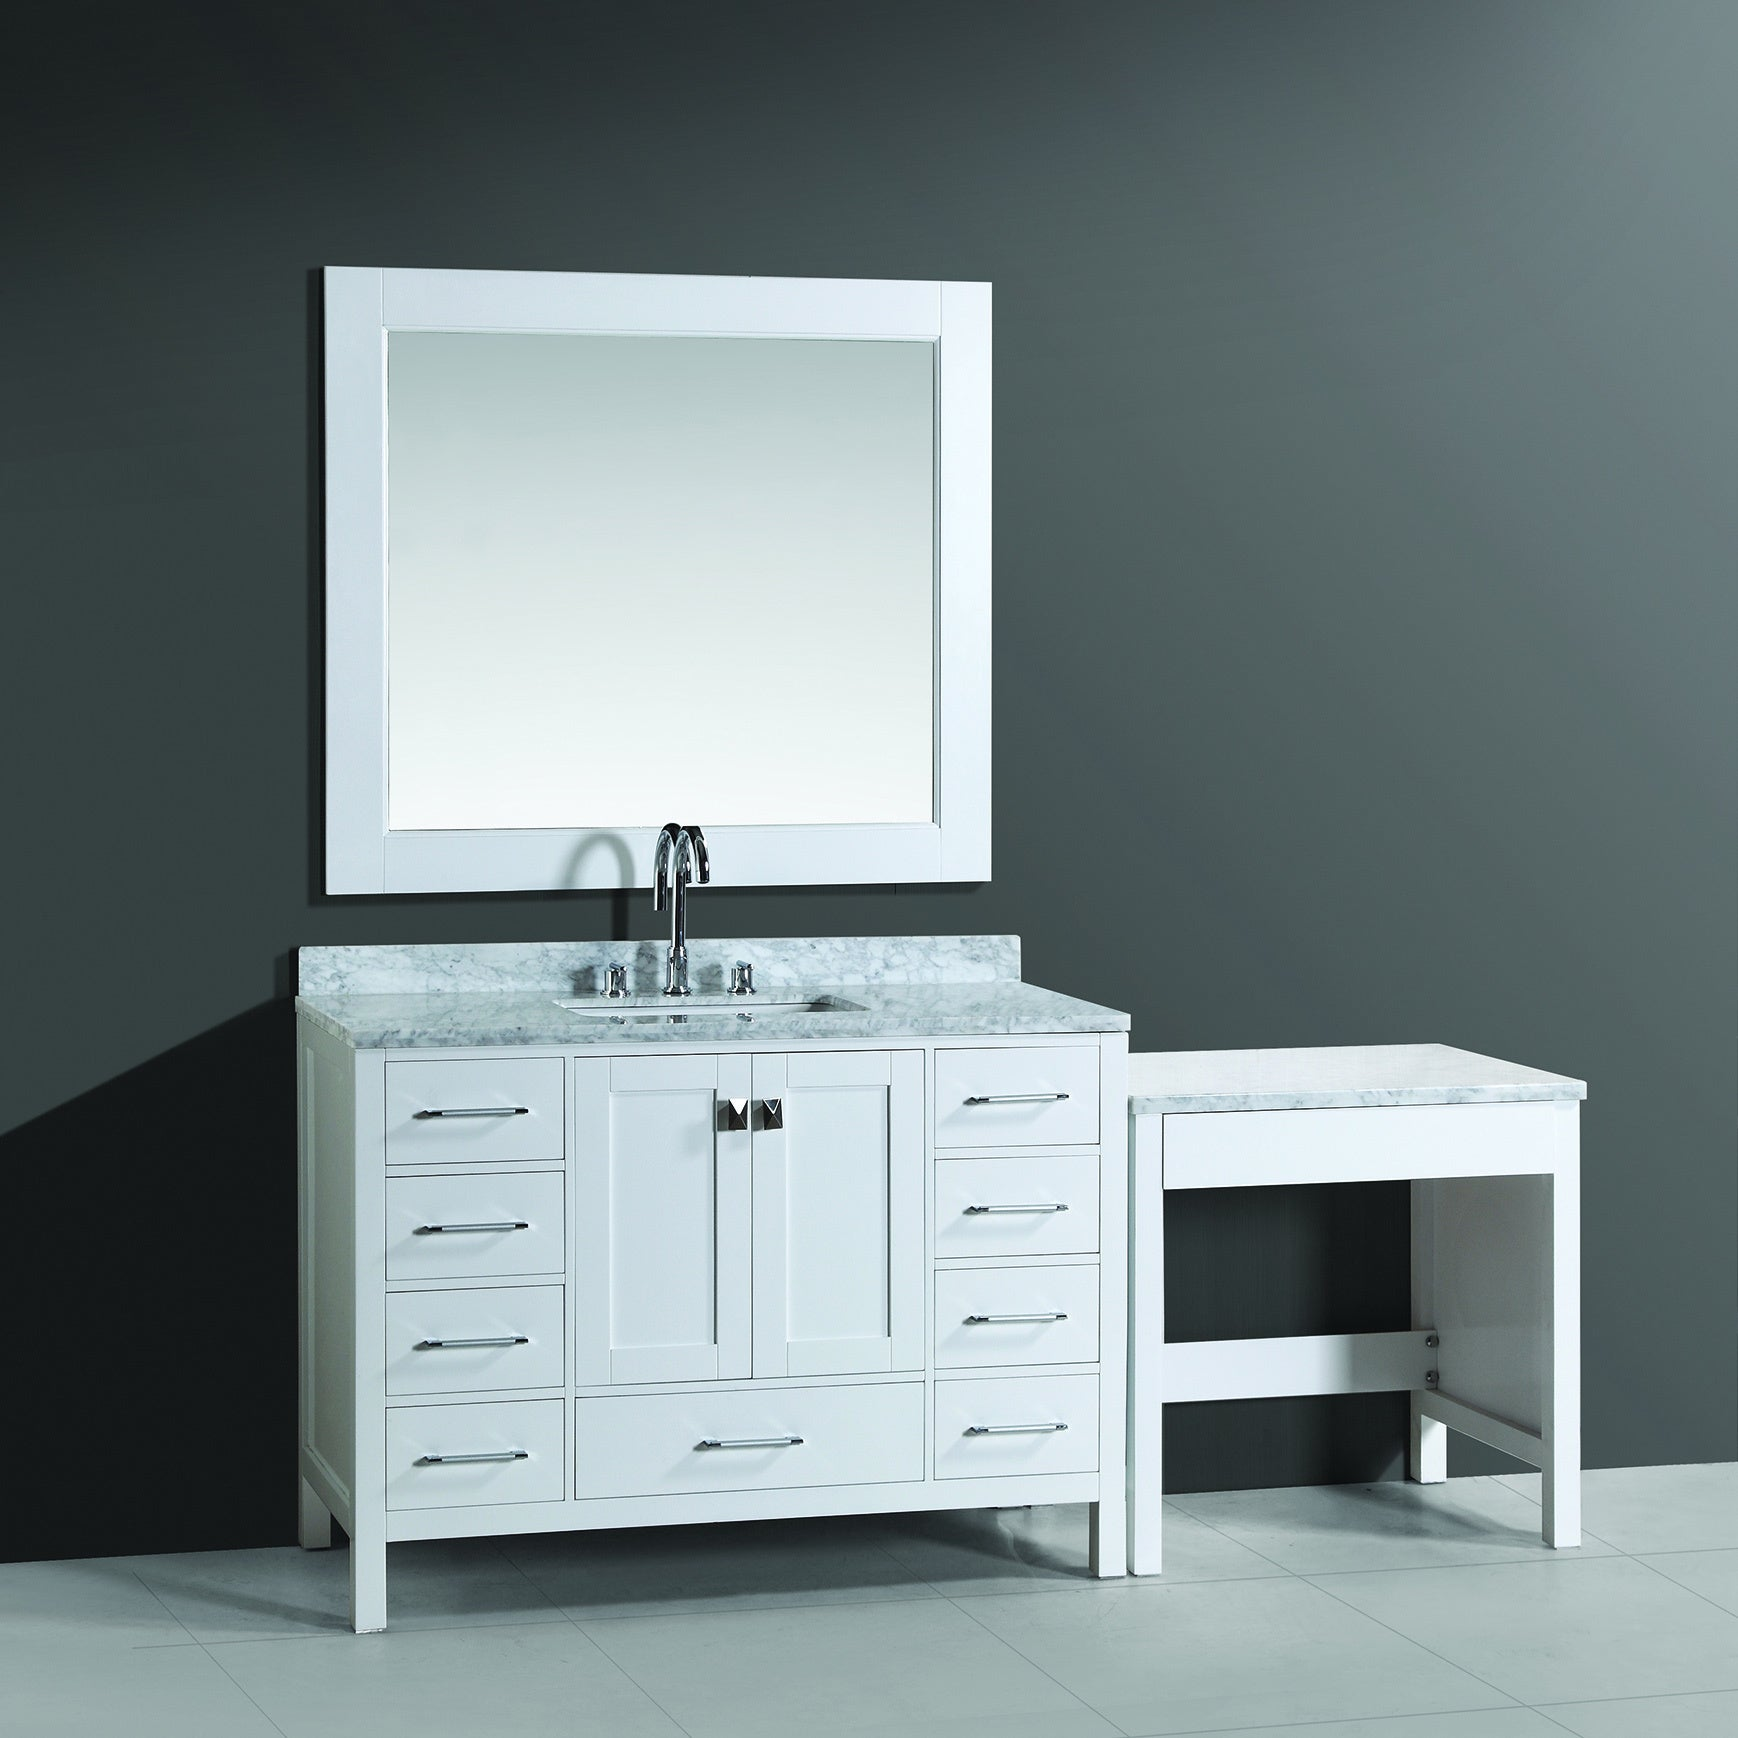 grey single white radcliff vanity colchester pretty nobby inspiration taupe reviews seacliff by design sink set ariel bathroom